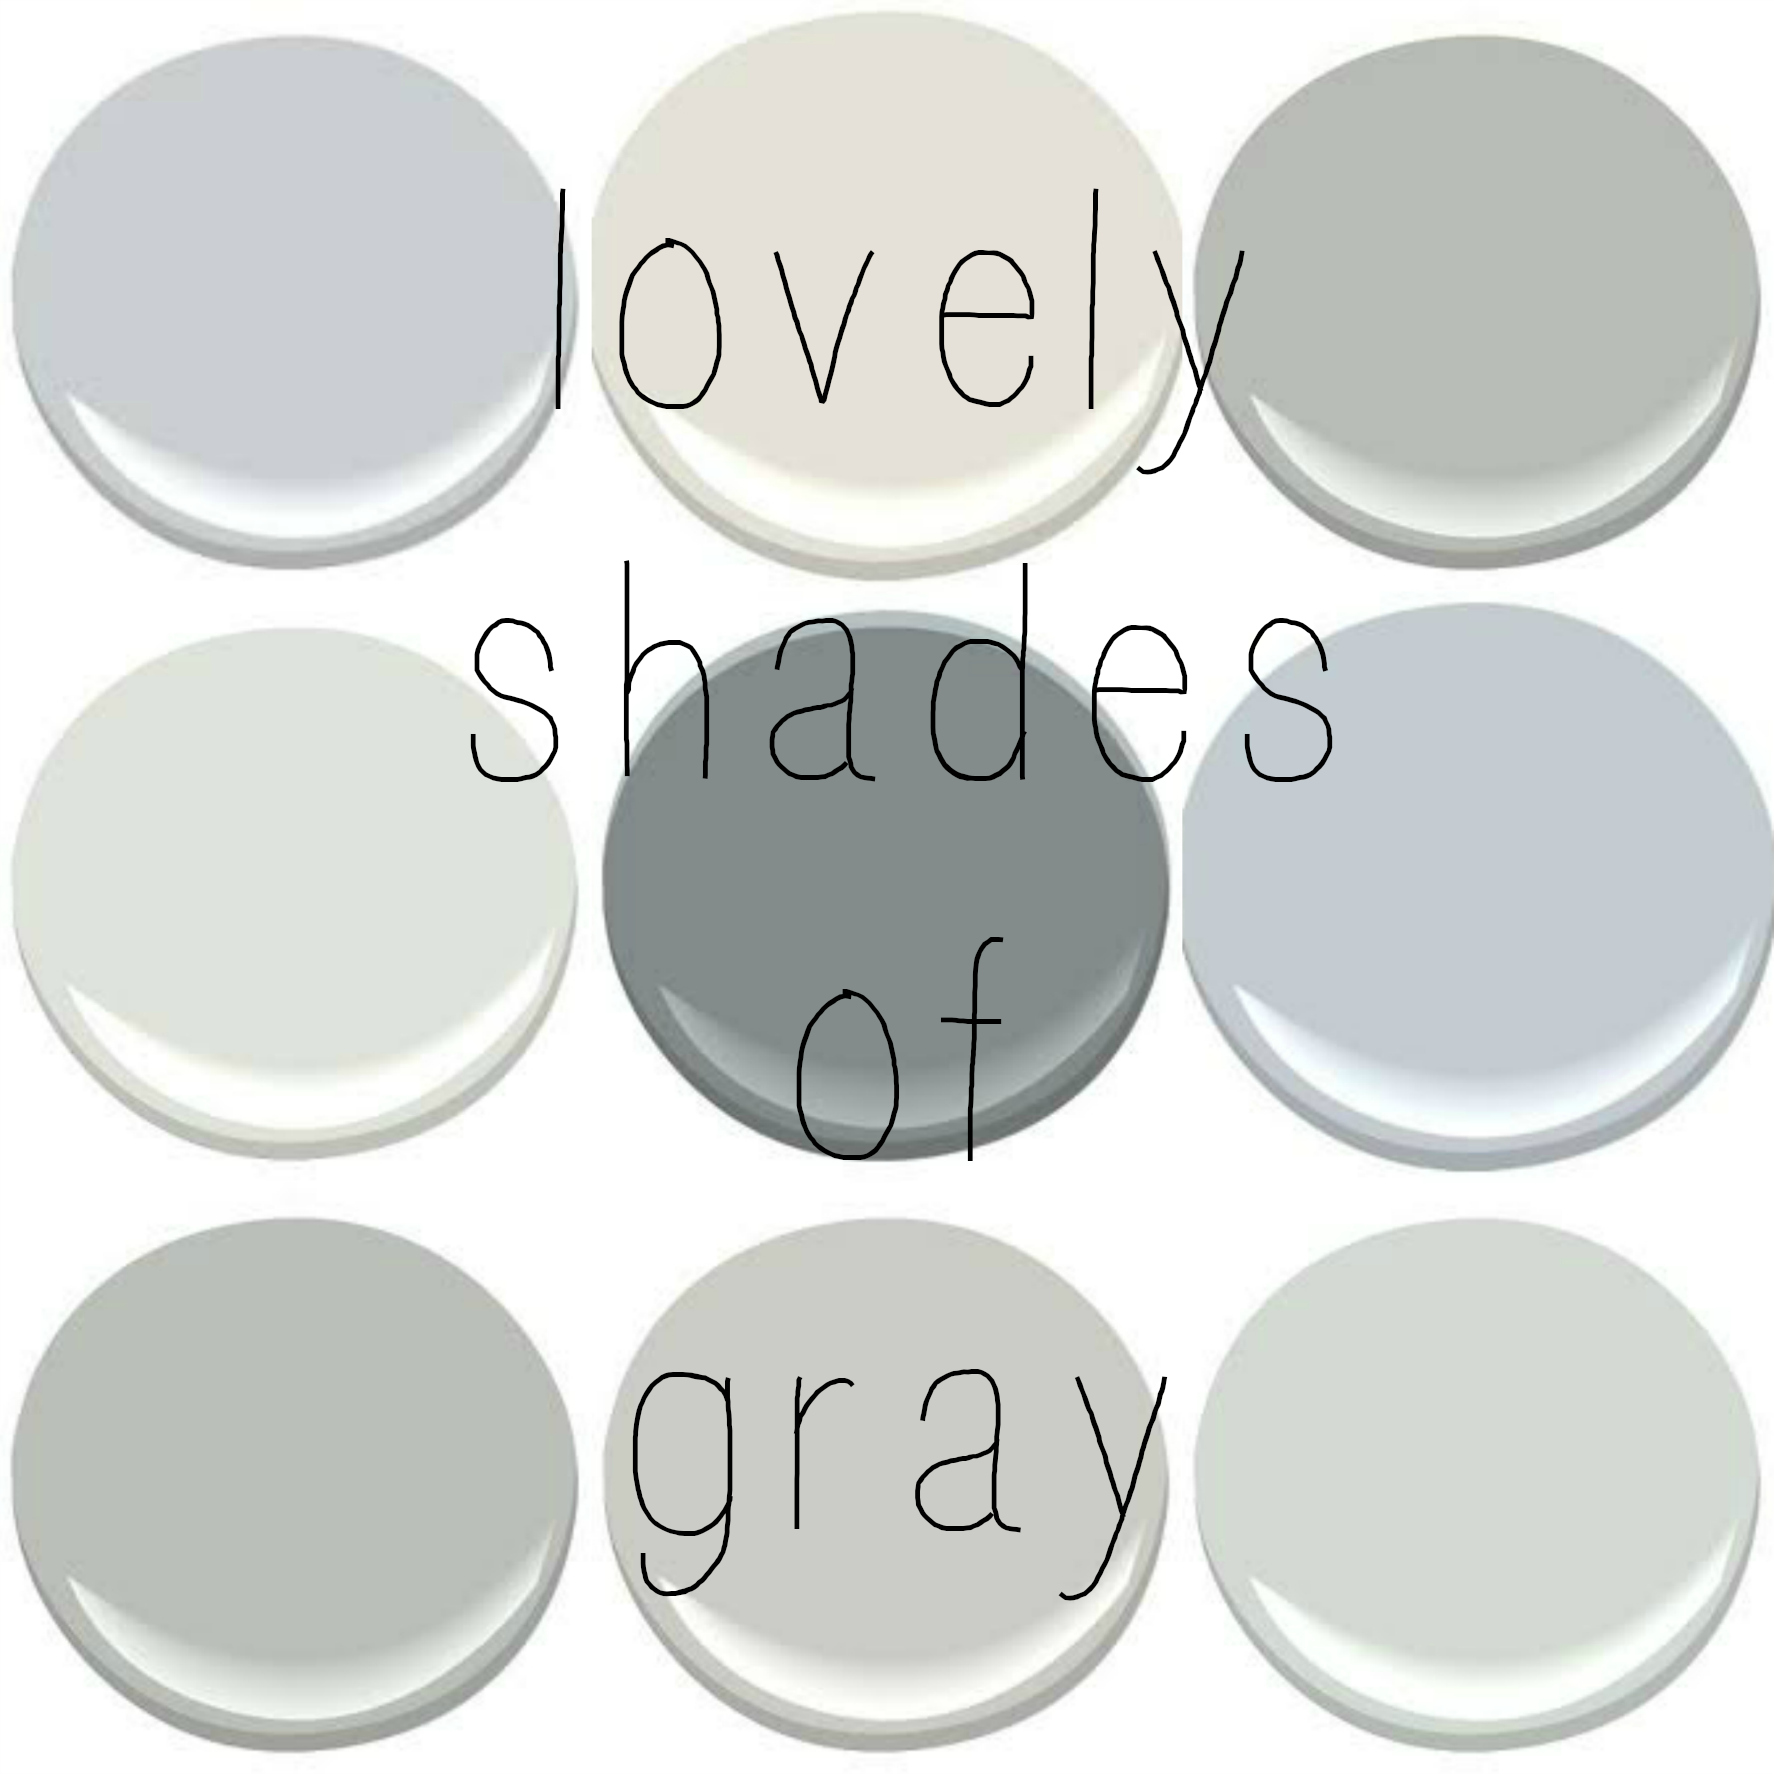 FAVORITE SHADES OF GRAY –